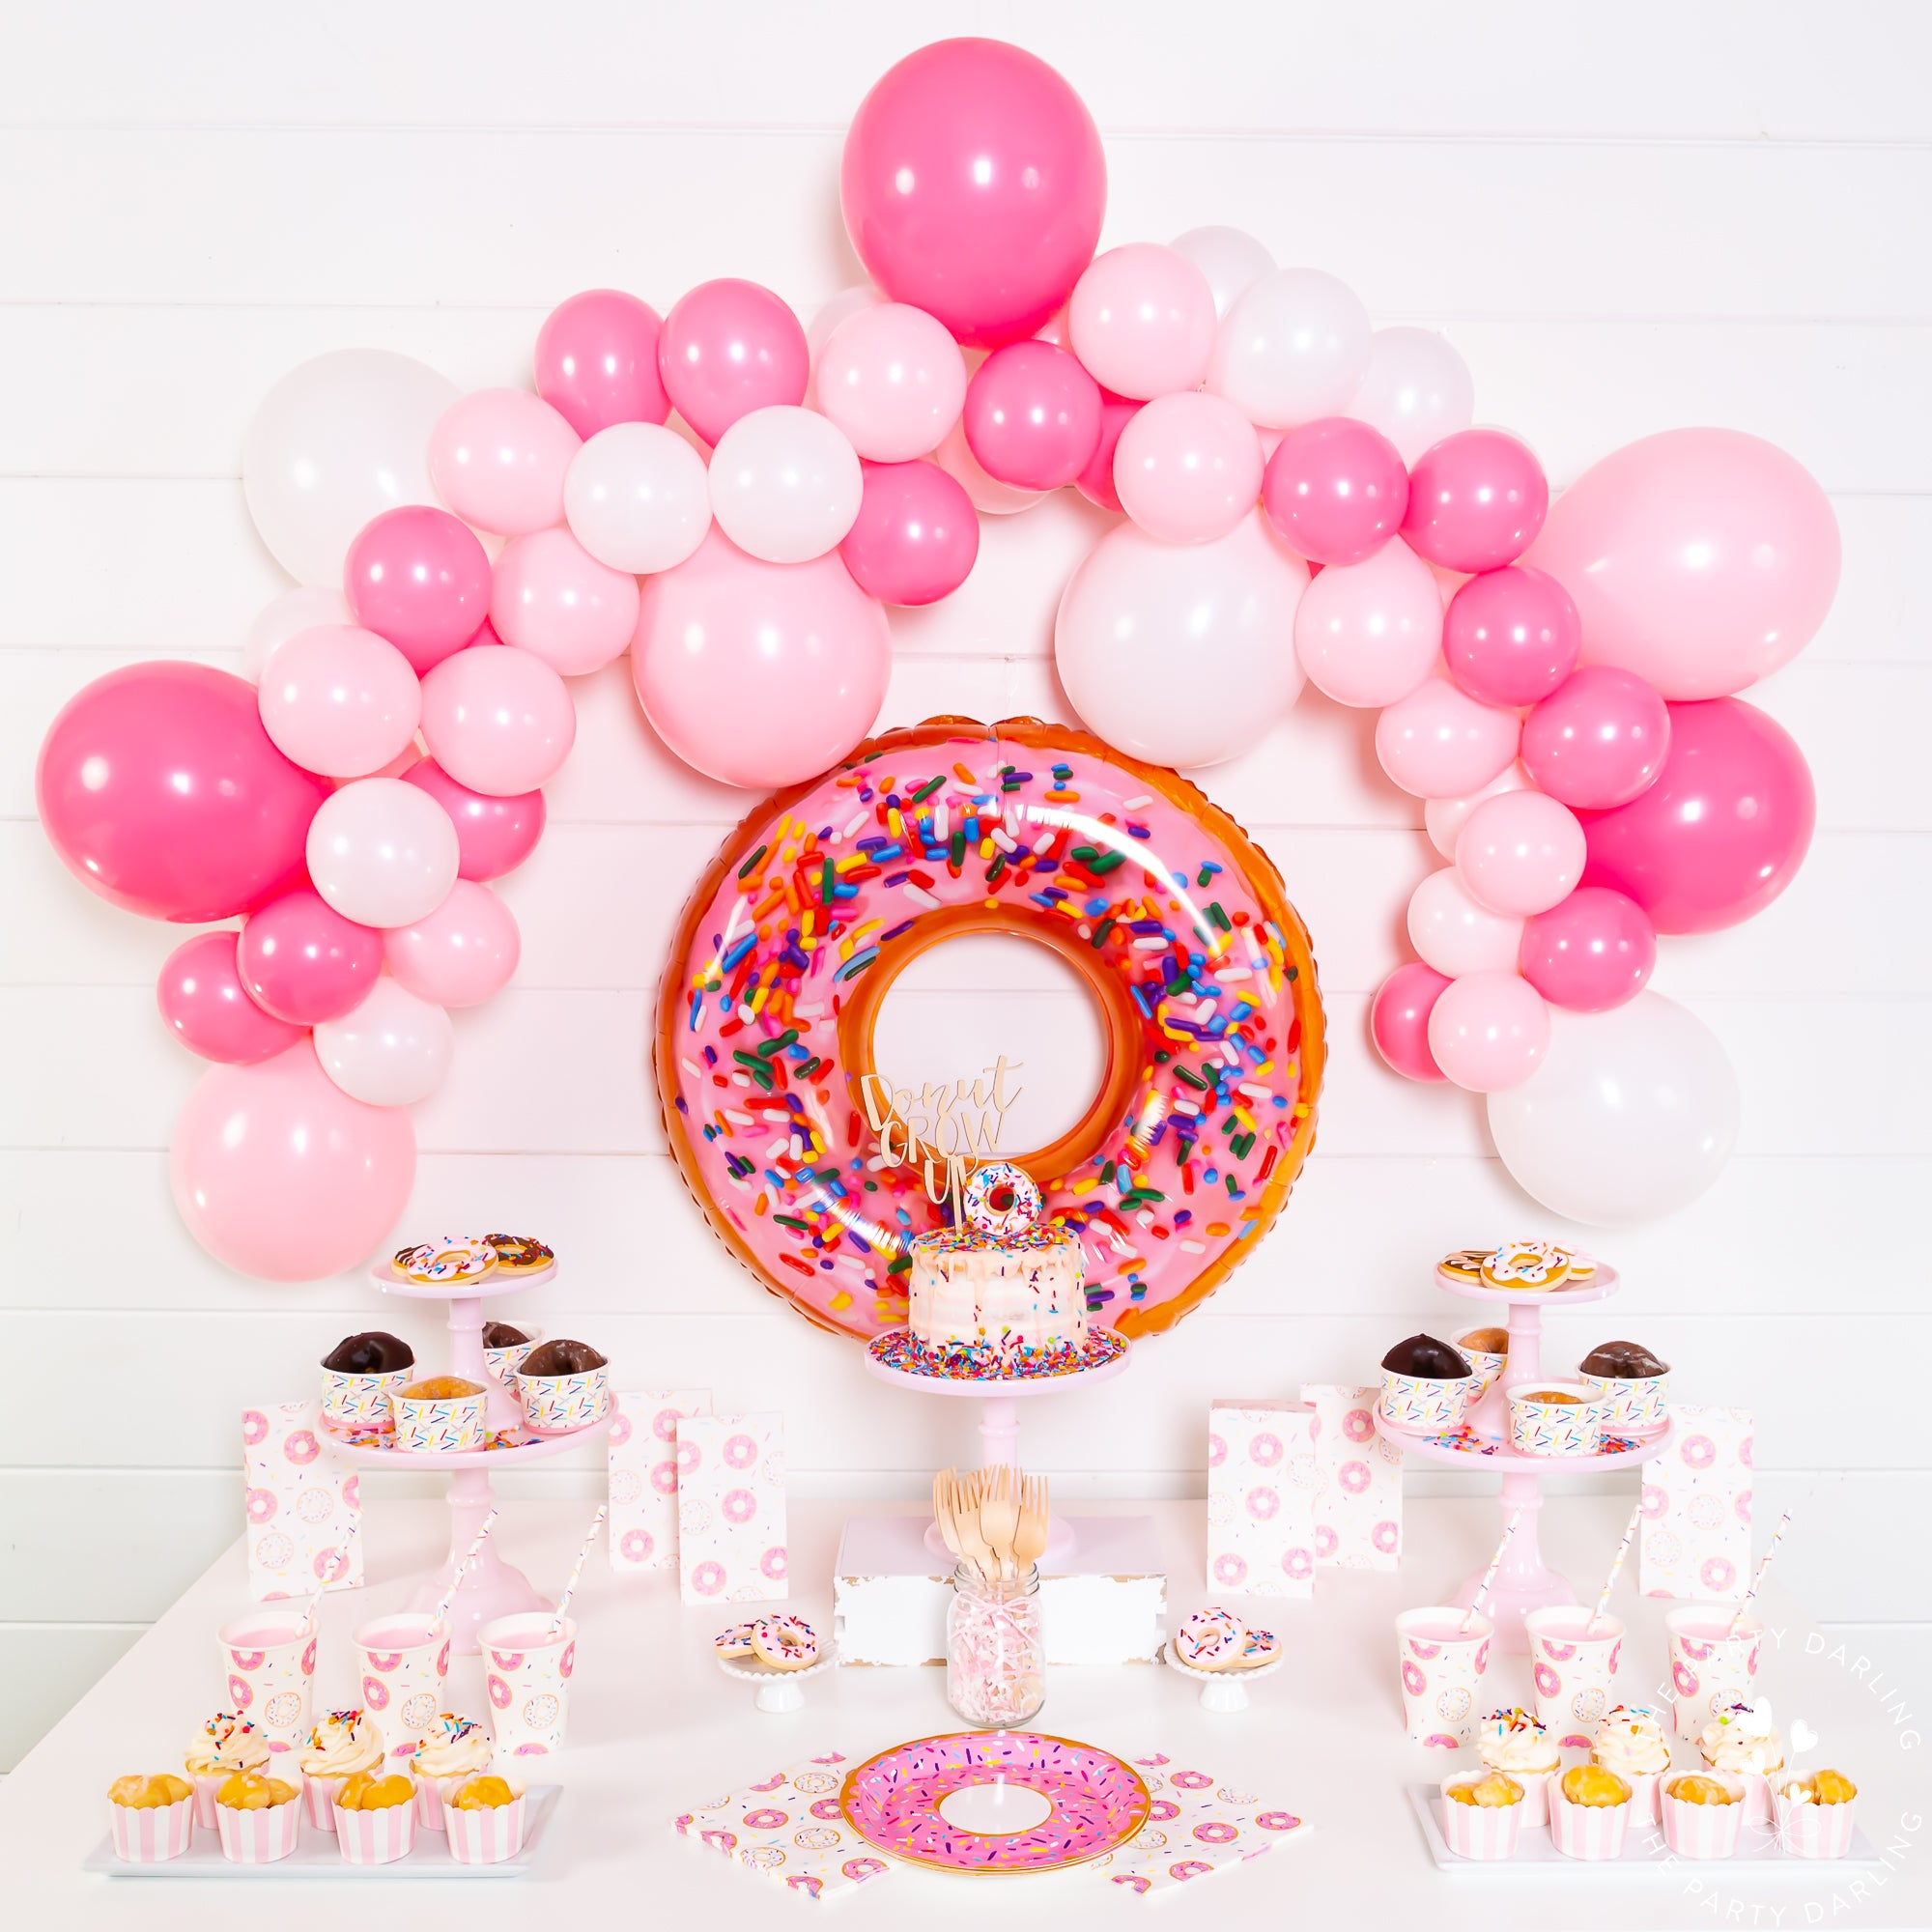 donut party package full party setup